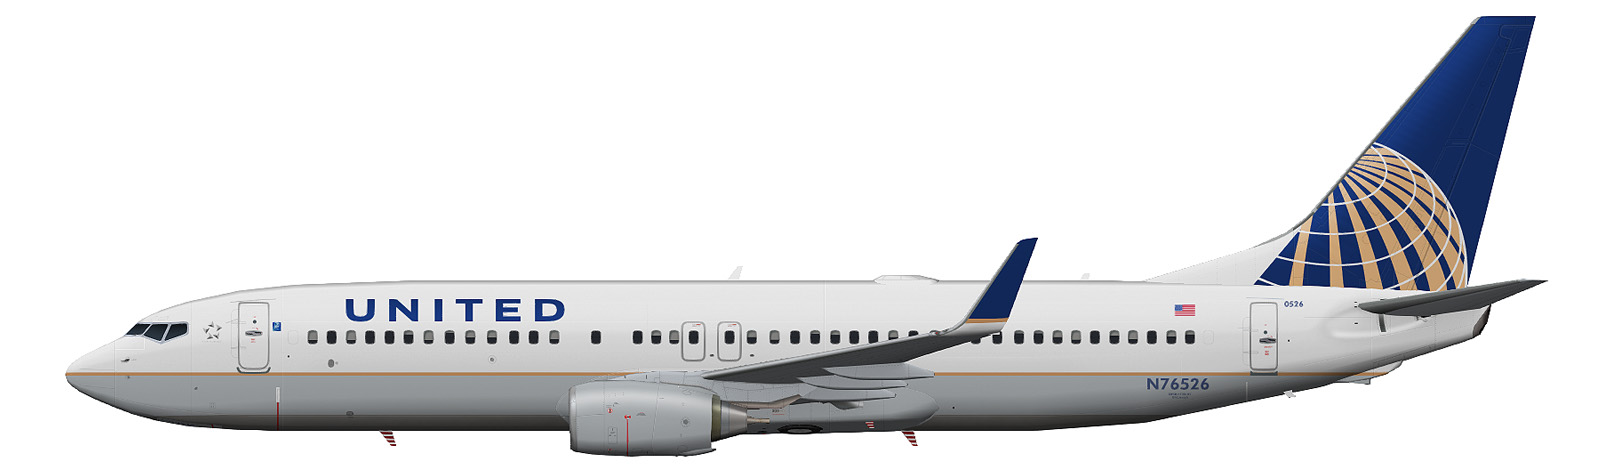 Boeing 737 900er Fsx Download Planes - crisepop